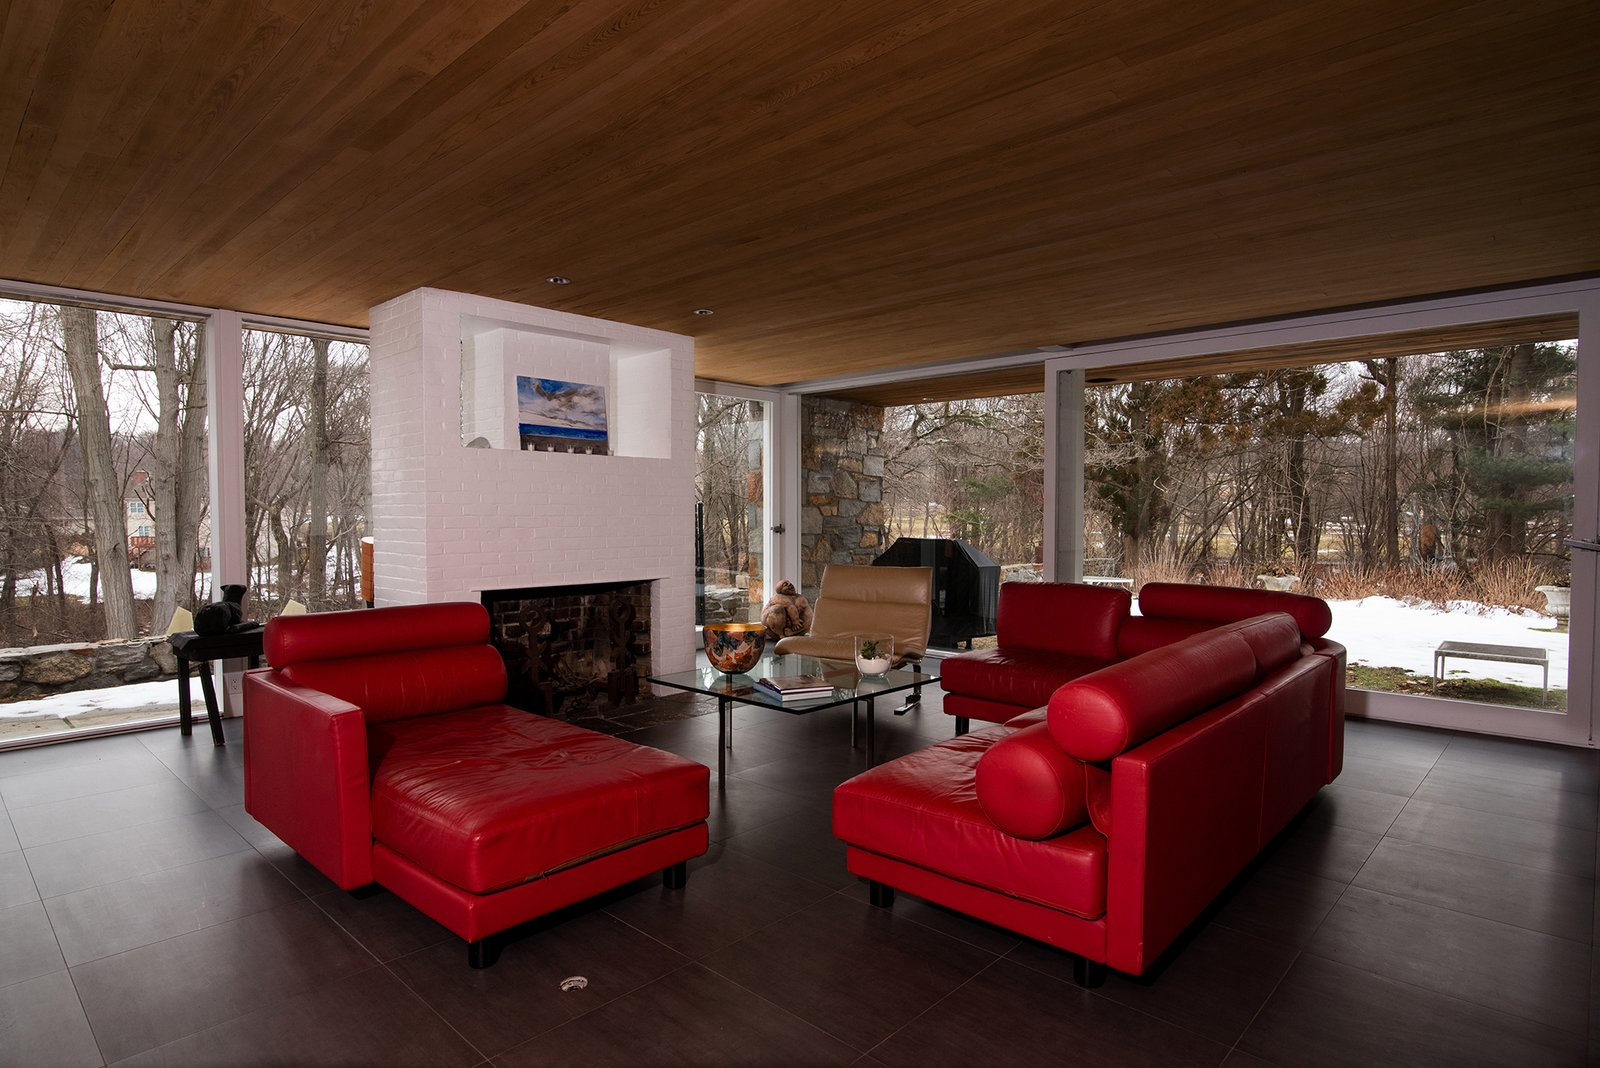 Living Room, Wood Burning Fireplace, Slate Floor, Sofa, End Tables, Recessed Lighting, Coffee Tables, and Chair Every room enjoys expansive views of the surrounding nature.  Photo 4 of 13 in Snag This Midcentury Gem by Marcel Breuer That's Listed For $999K